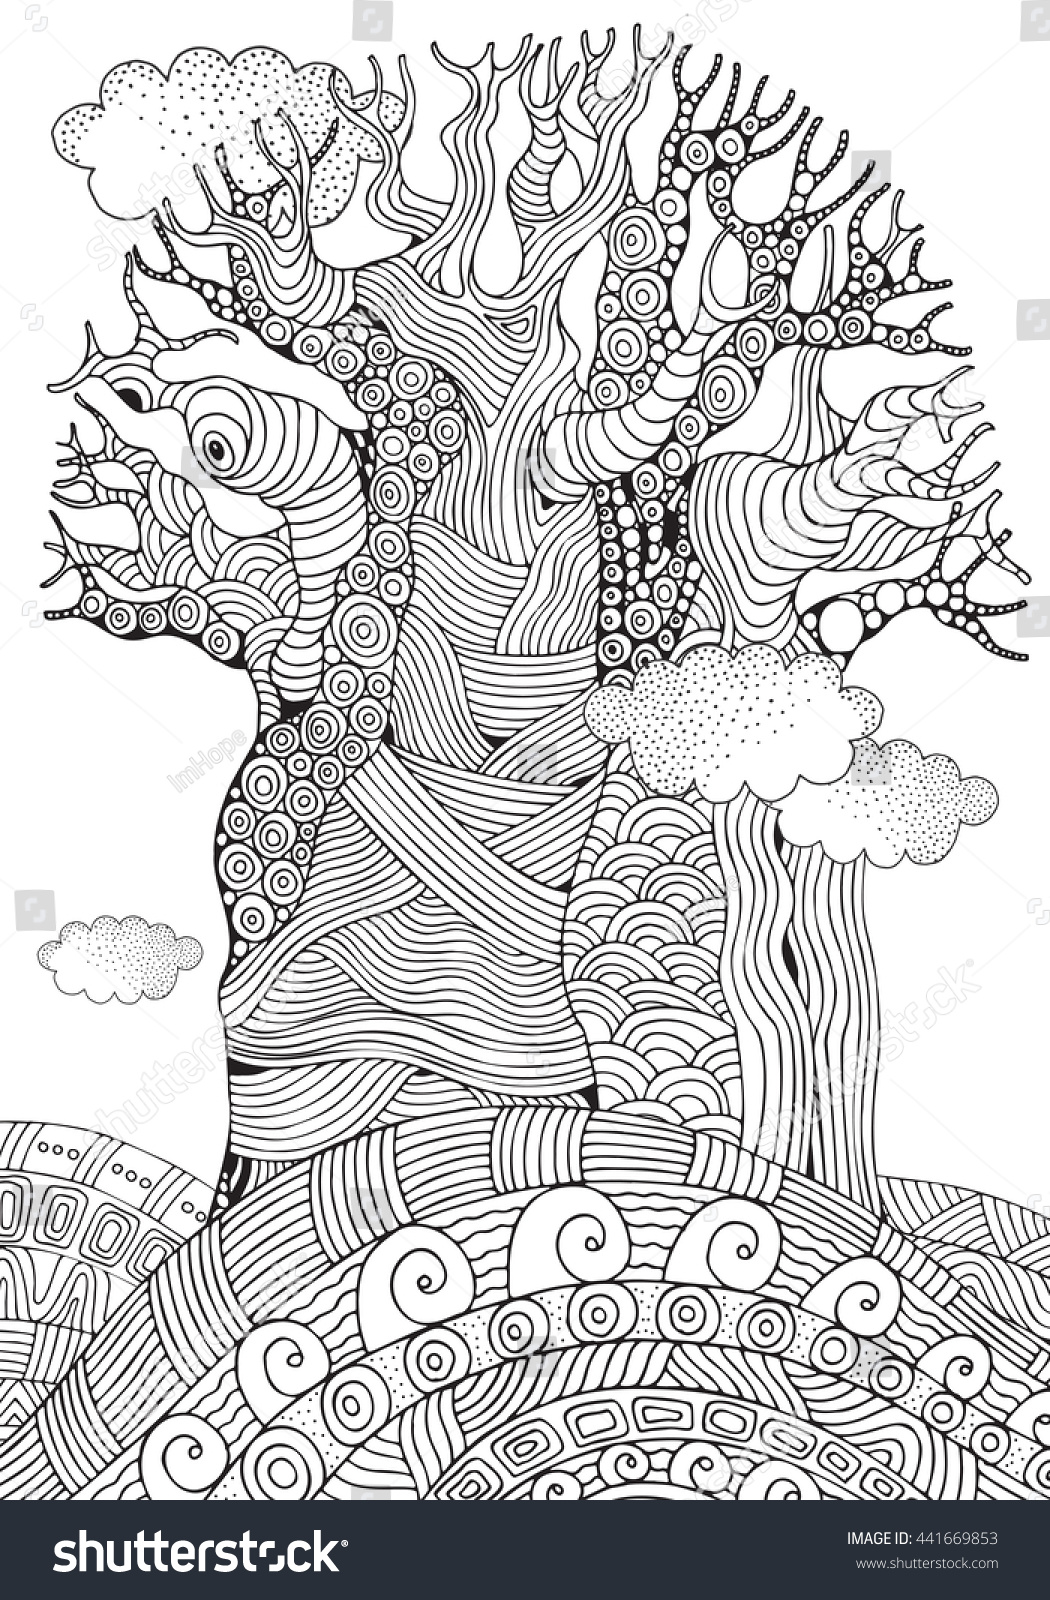 african trees coloring pages - photo#27